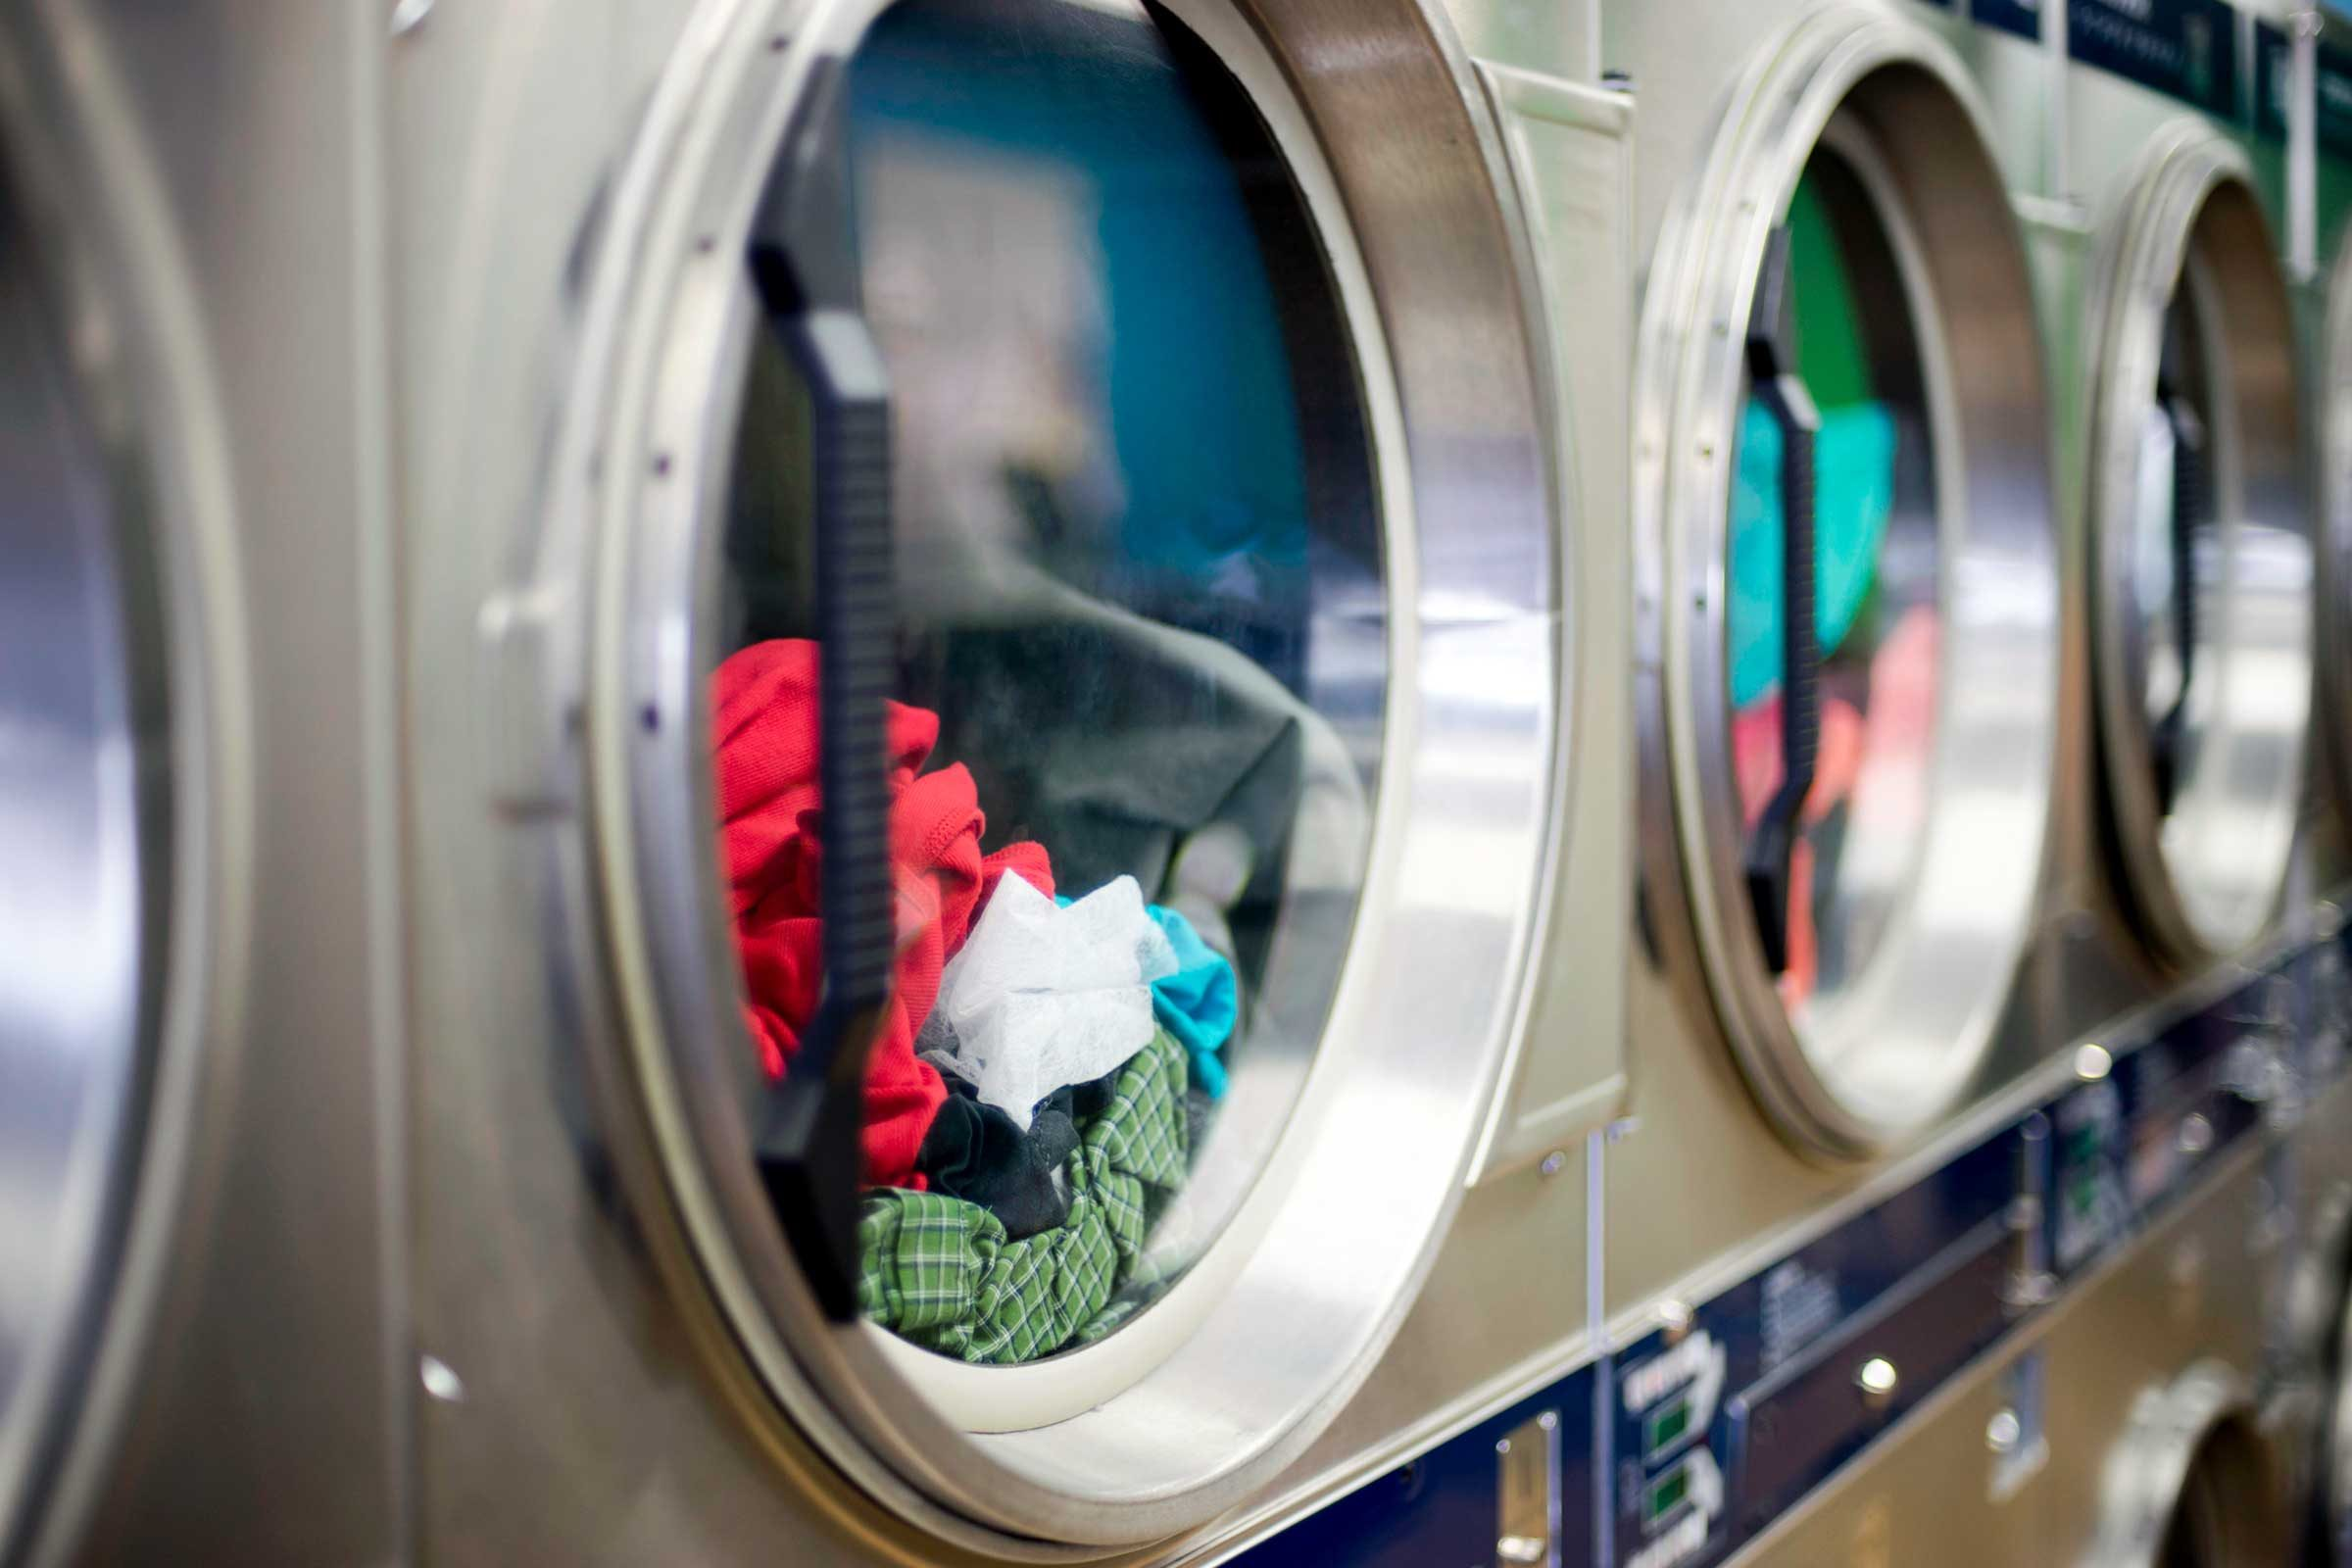 Laundry Pictures Laundry Facts 9 That Will Surprise You  Reader's Digest